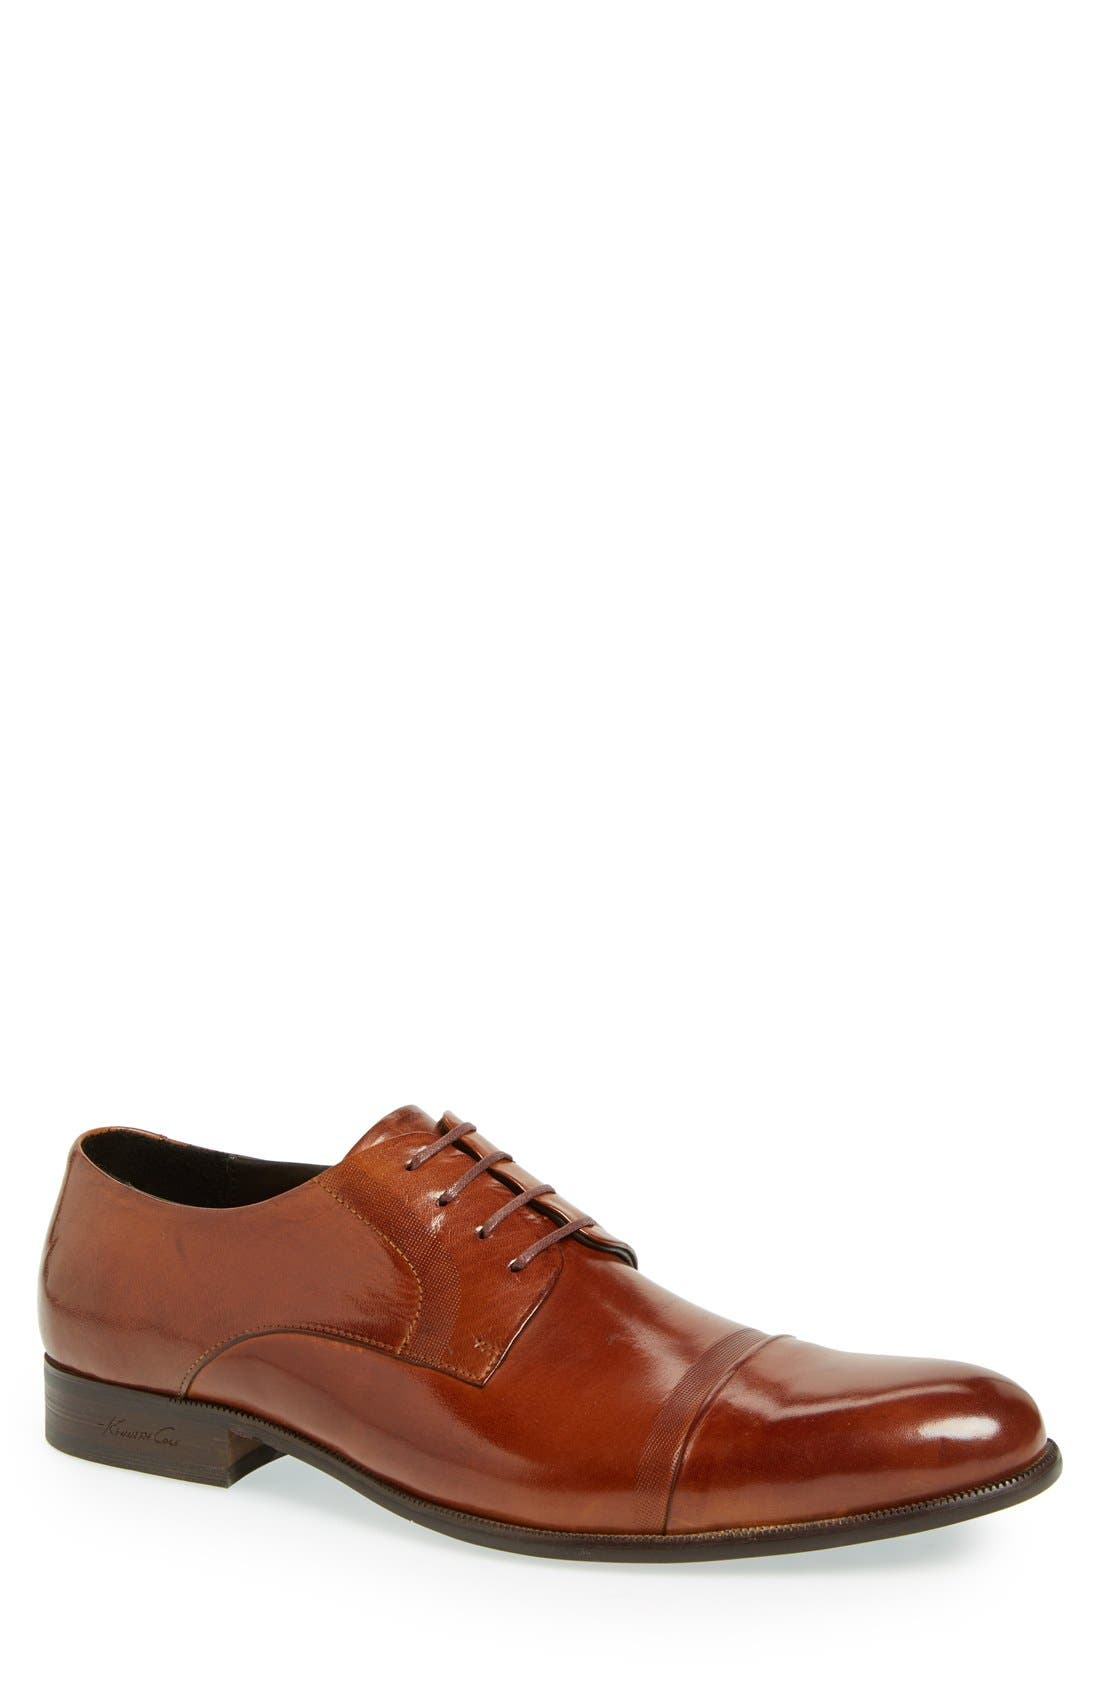 Alternate Image 1 Selected - Kenneth Cole New York 'Chief Of Staff' Cap Toe Derby (Men)